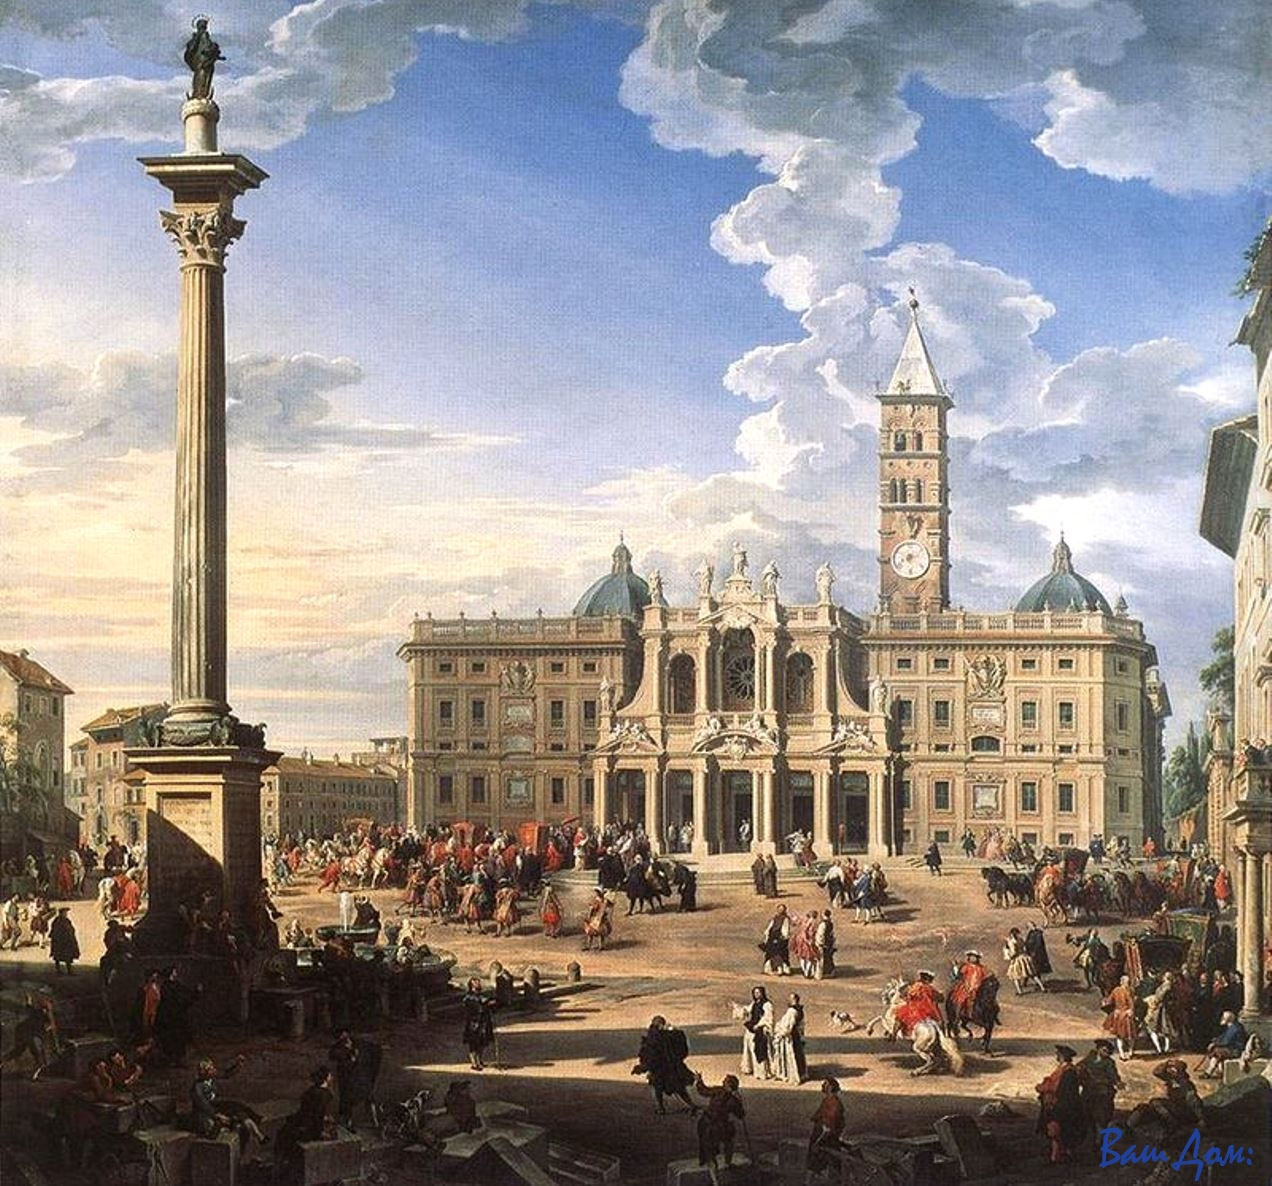 Юбилей Giovanni_Paolo_Pannini_-_The_Piazza_and_Church_of_Santa_Maria_Maggiore